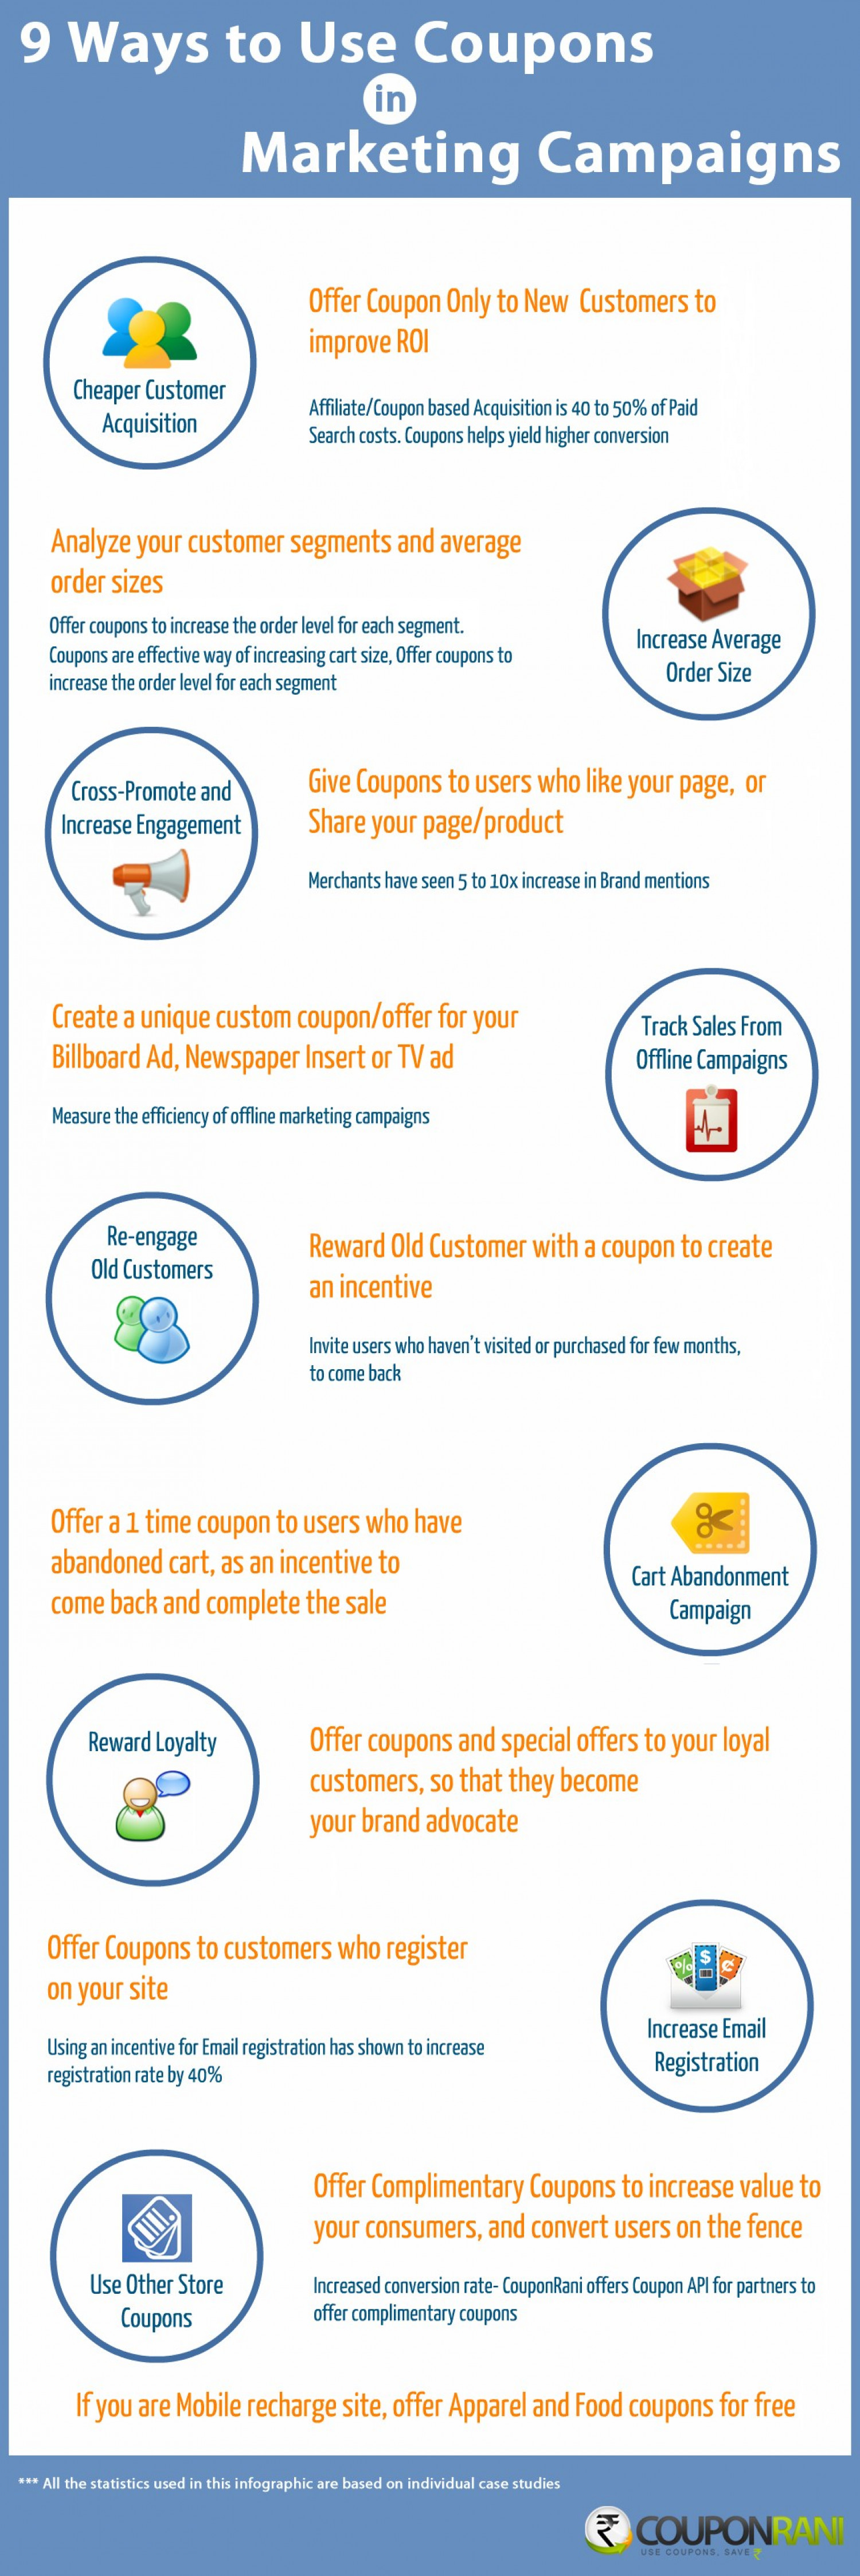 9 Ways to Use Coupons For Customer Acquisition, Retention & Engagement  Infographic